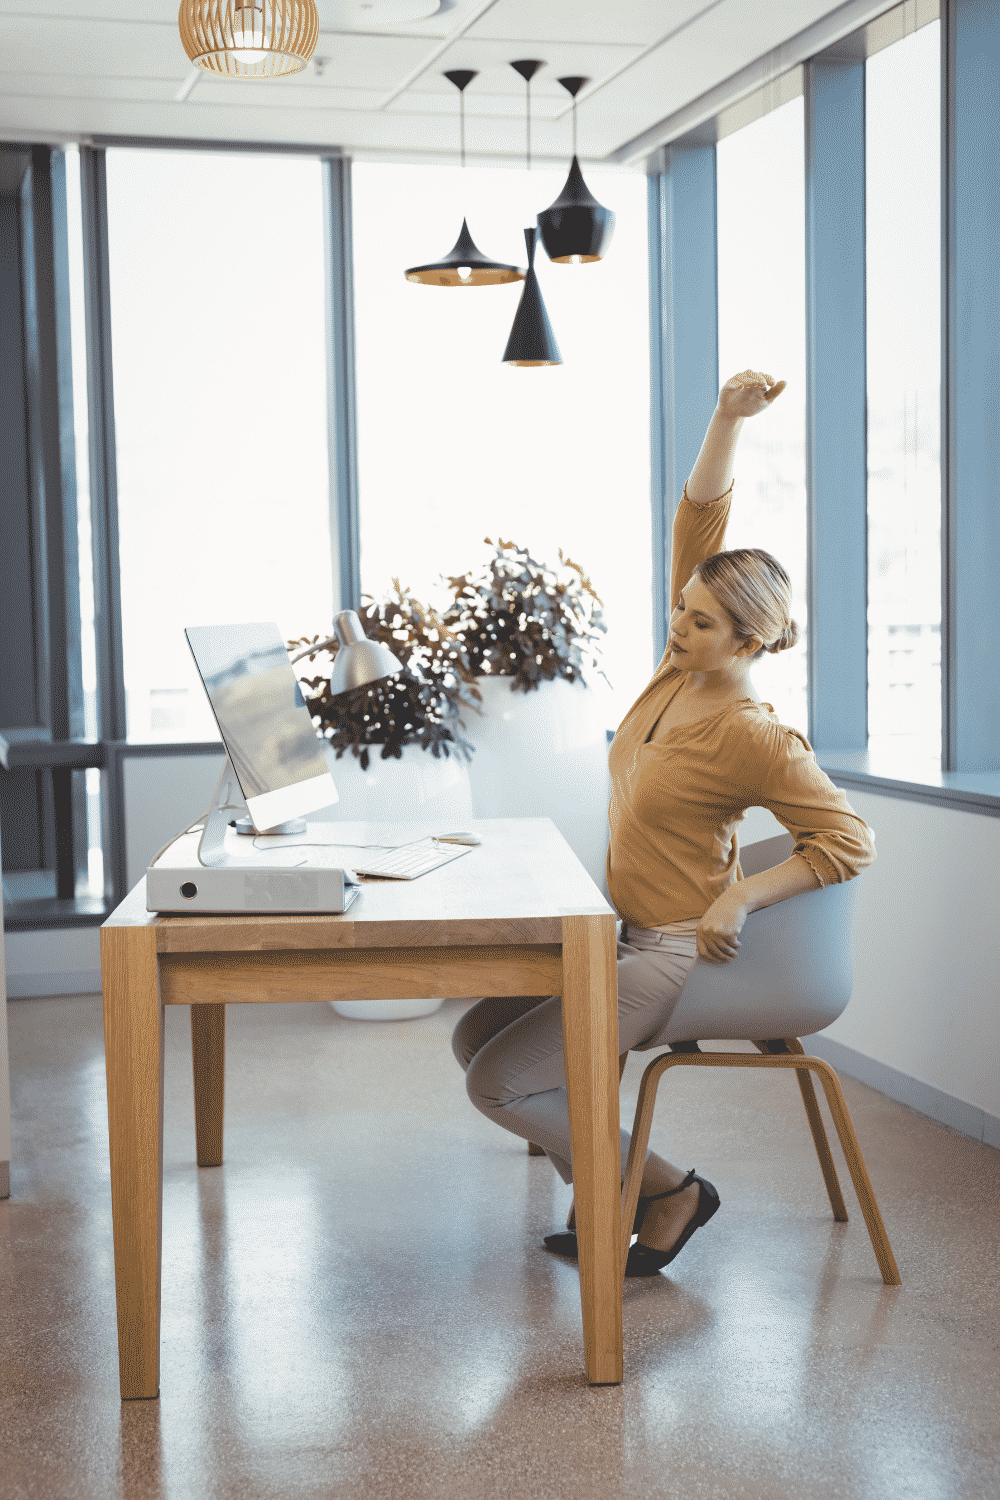 A woman stretches while working from home